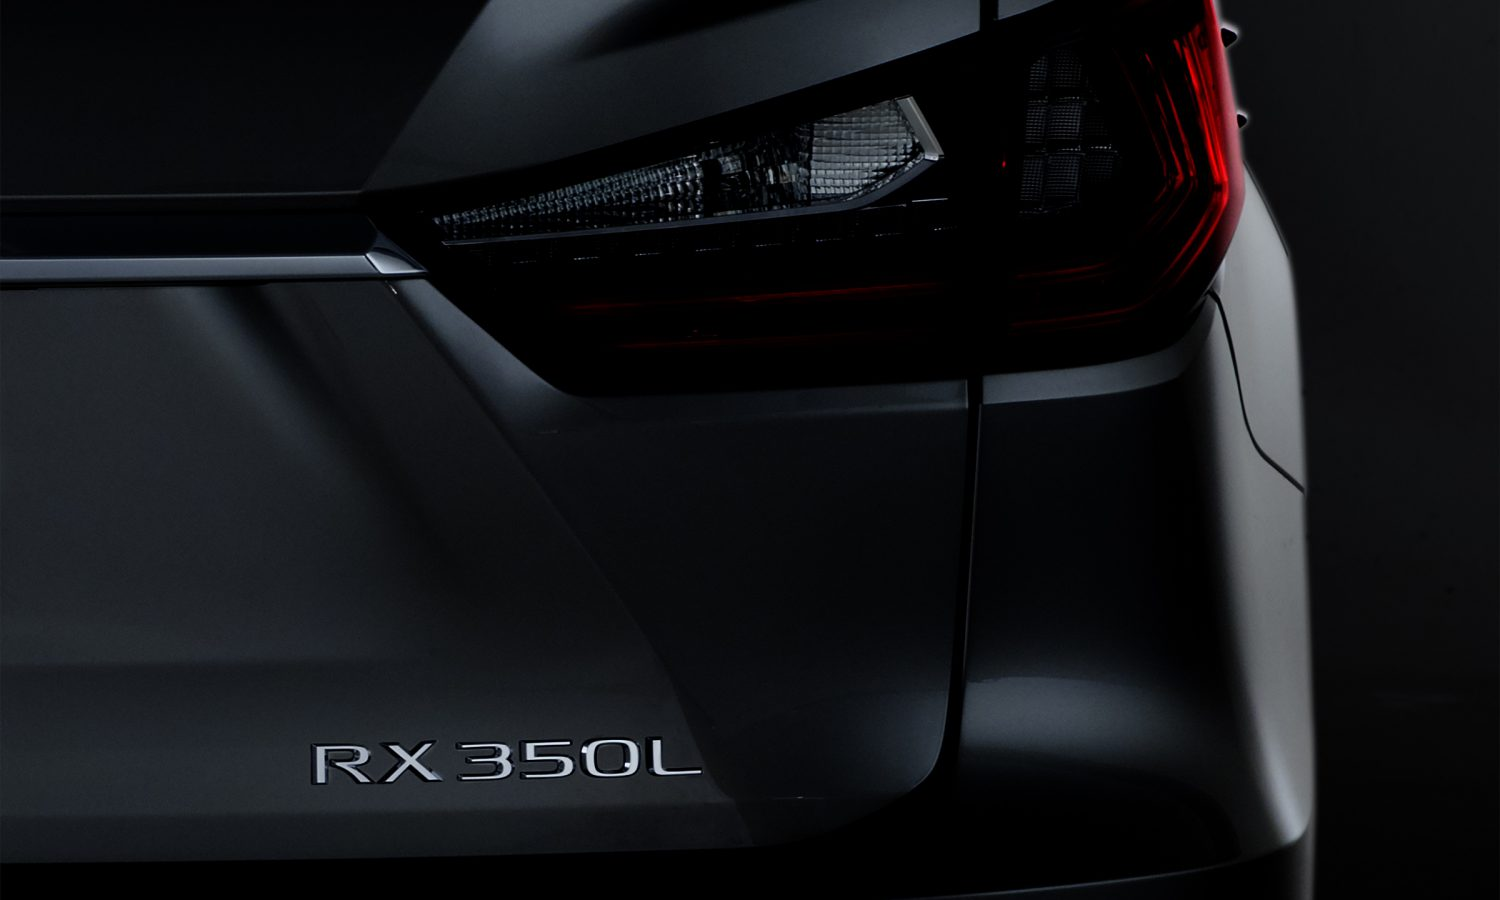 The Power of Three: All-new 3-row Lexus RXL to Debut at the 2017 Los Angeles Auto Show